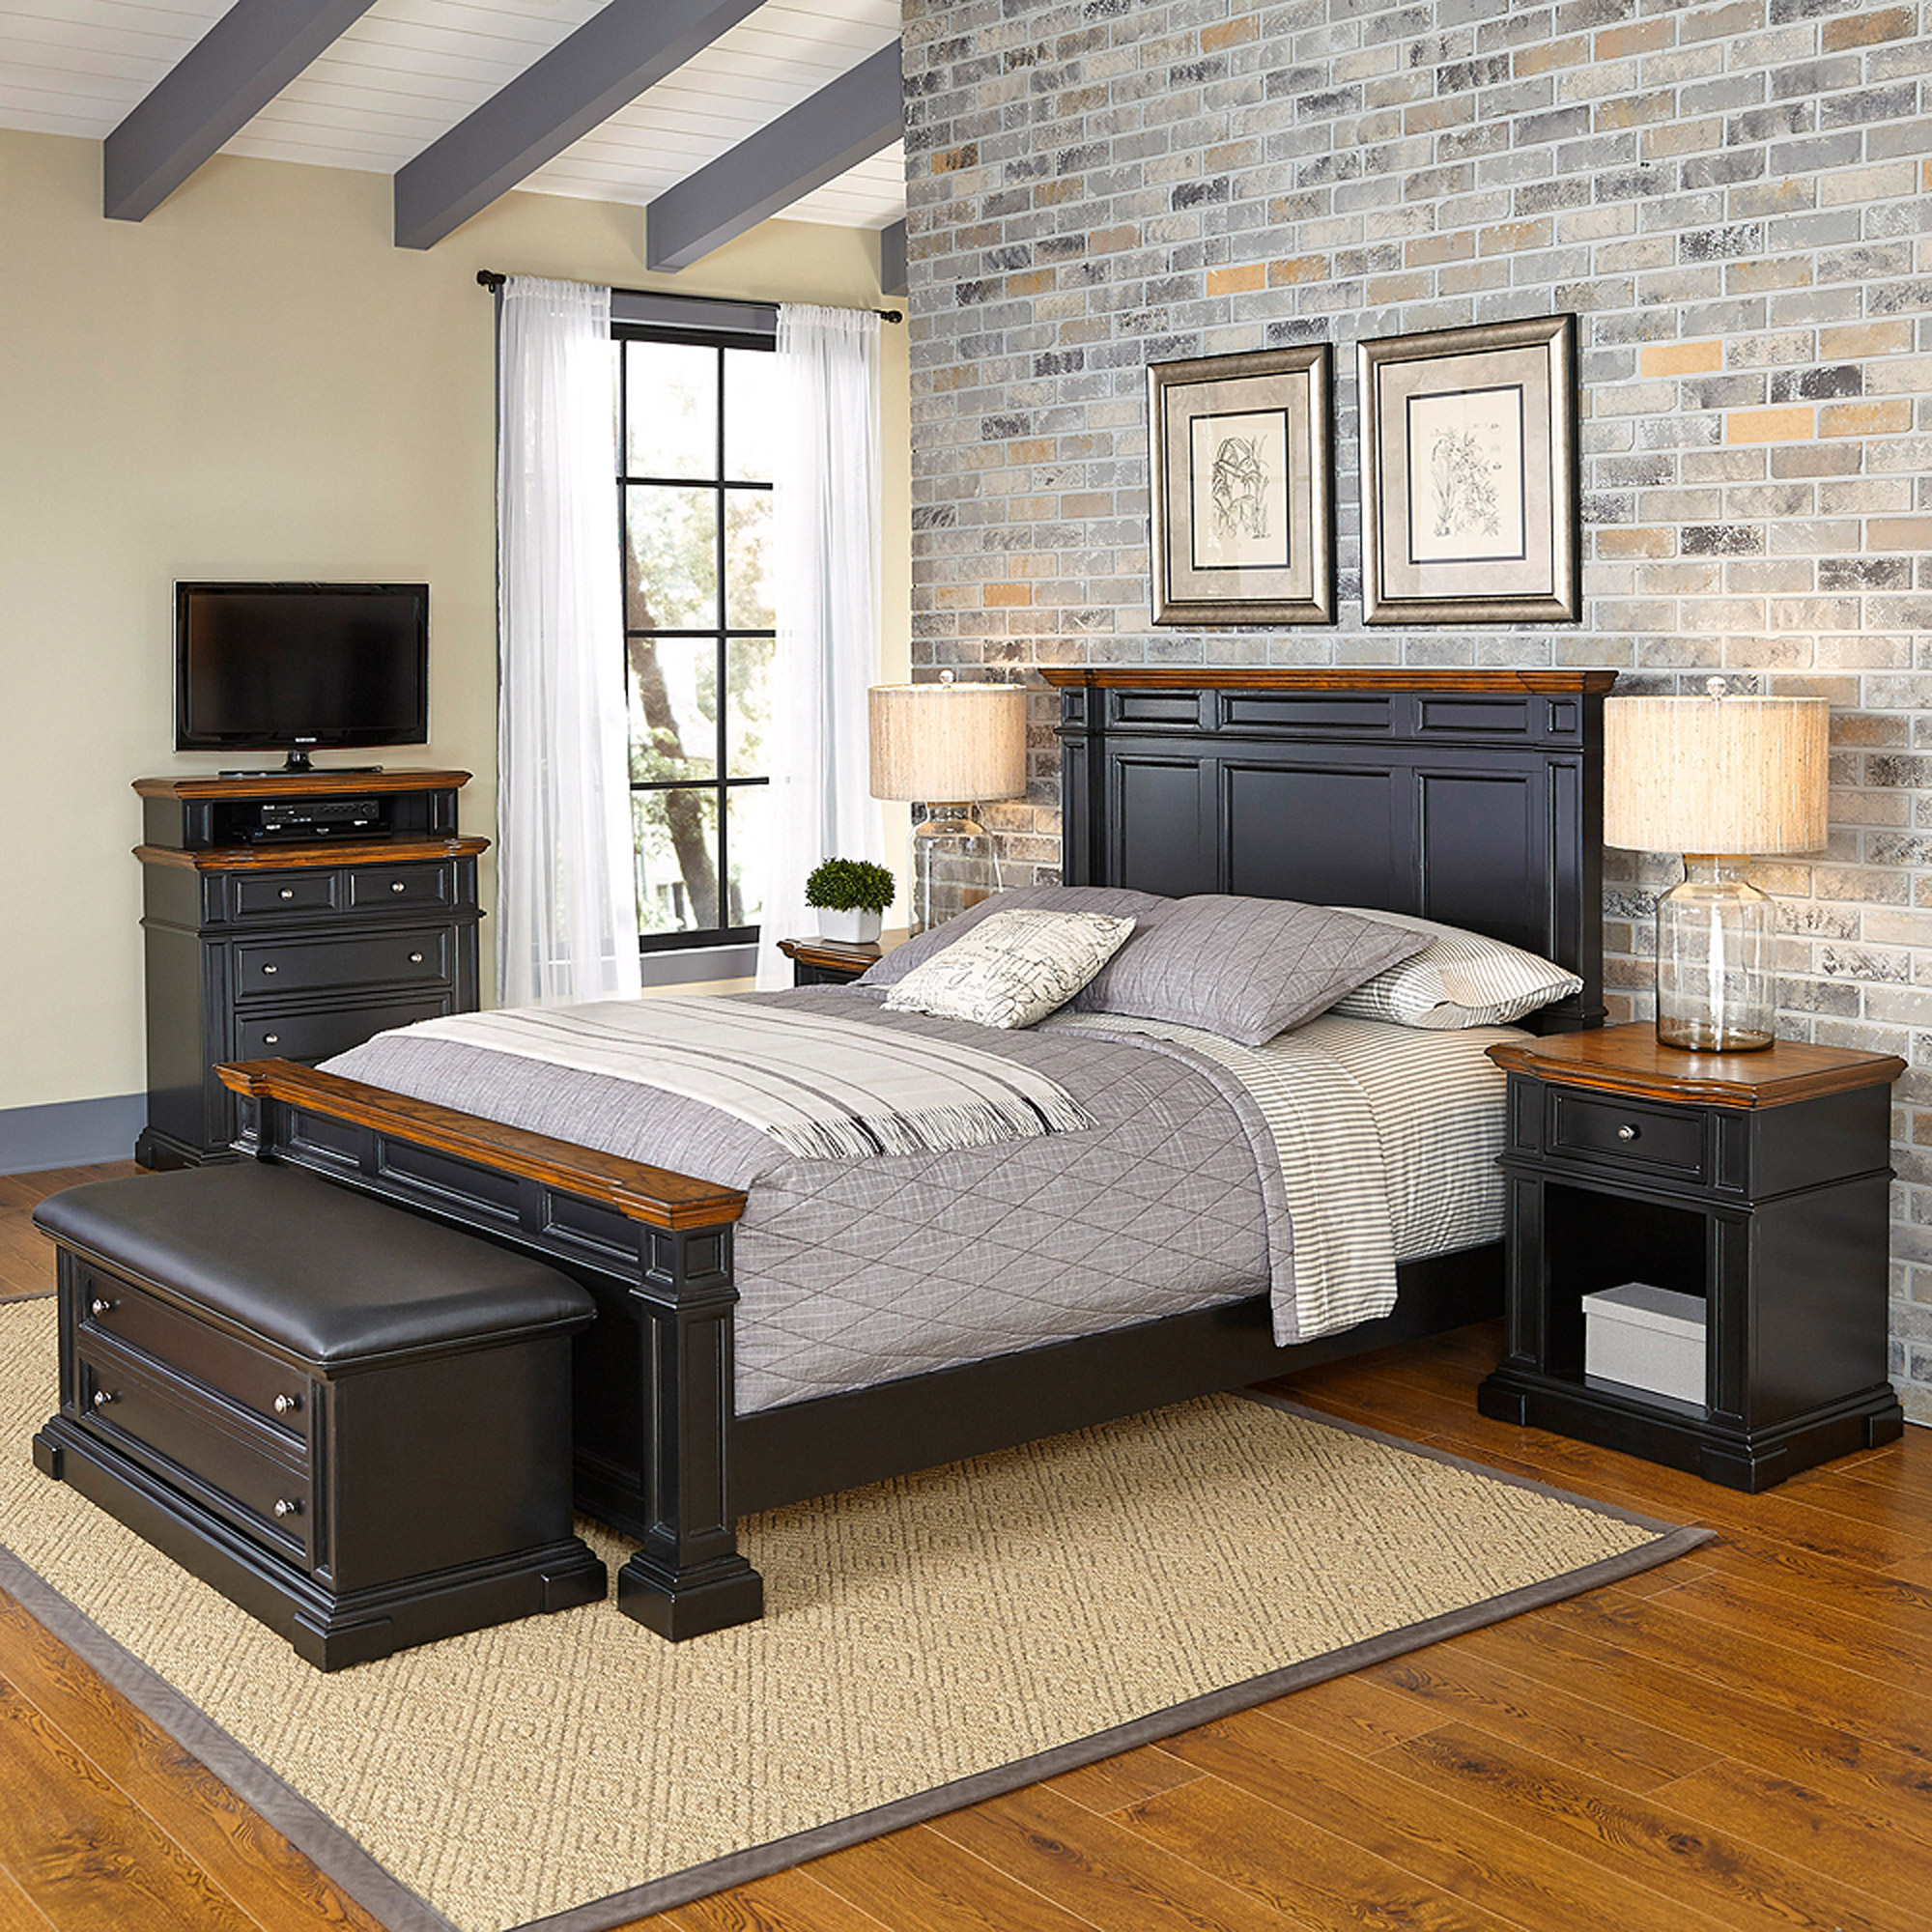 Home Styles Americana King Bed, 2 Night Stands, Media Chest and Upholstered Bench